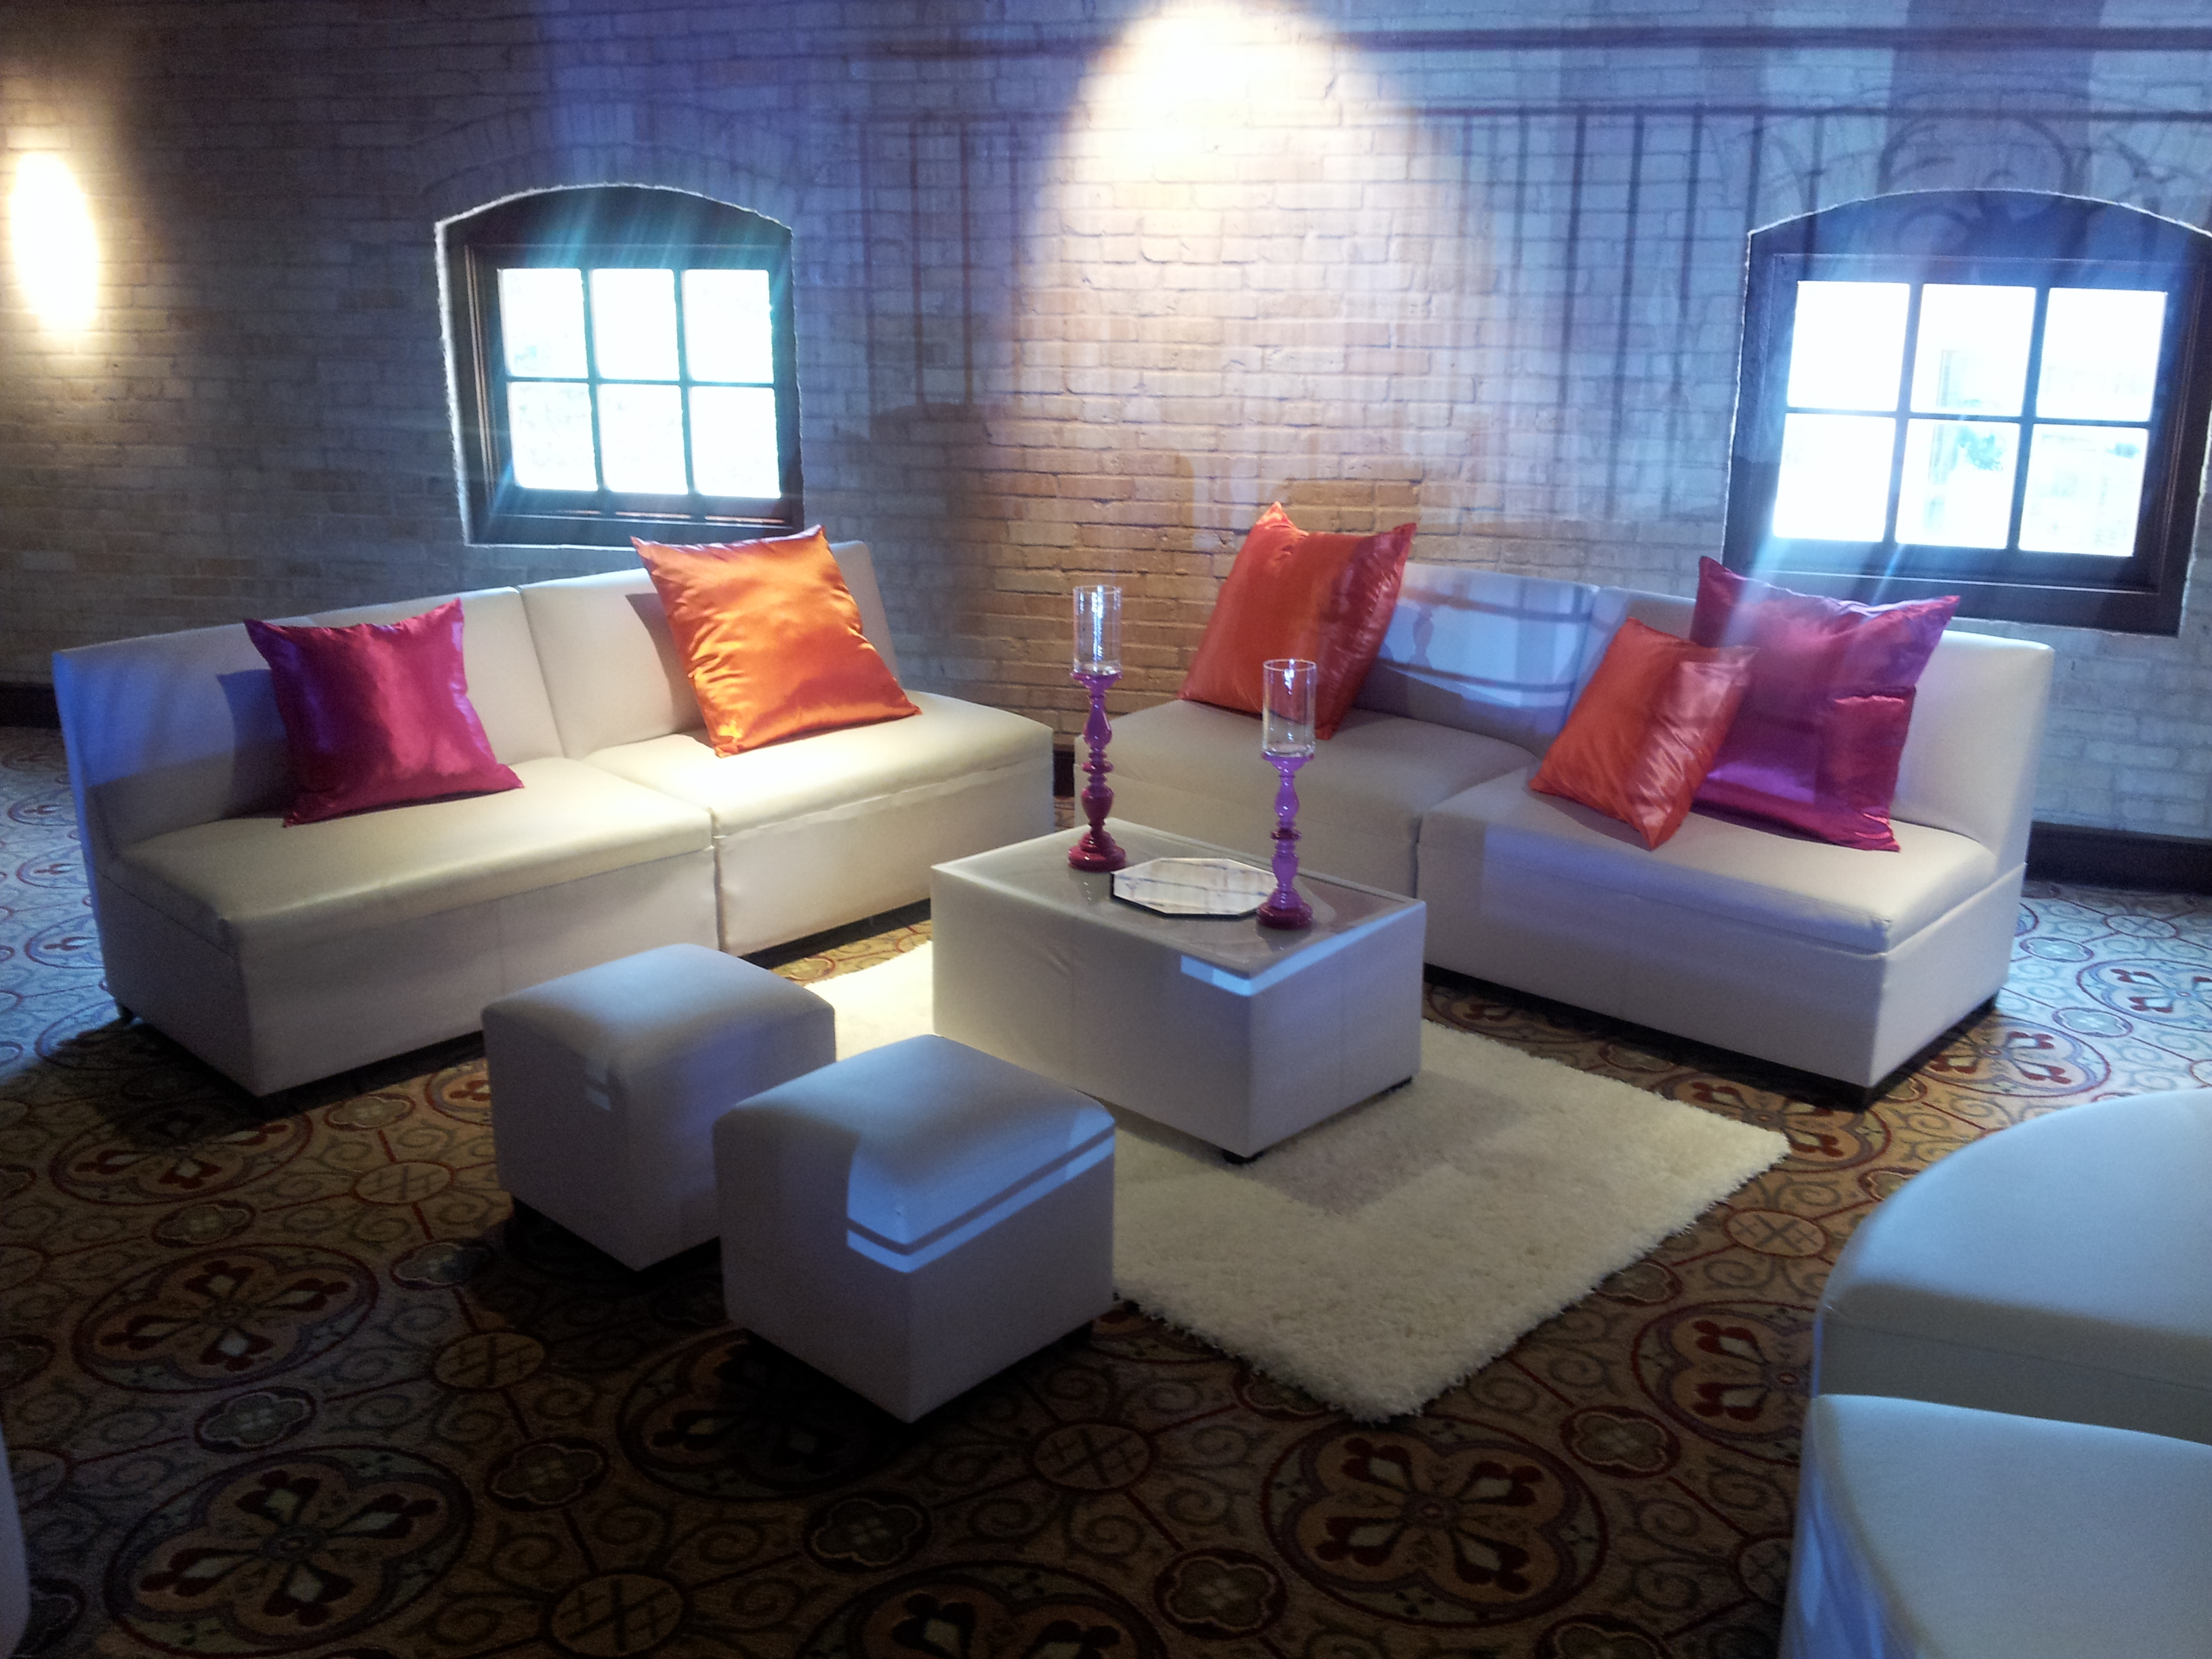 Lounge 4 Events Furniture and Decor Rental image 5